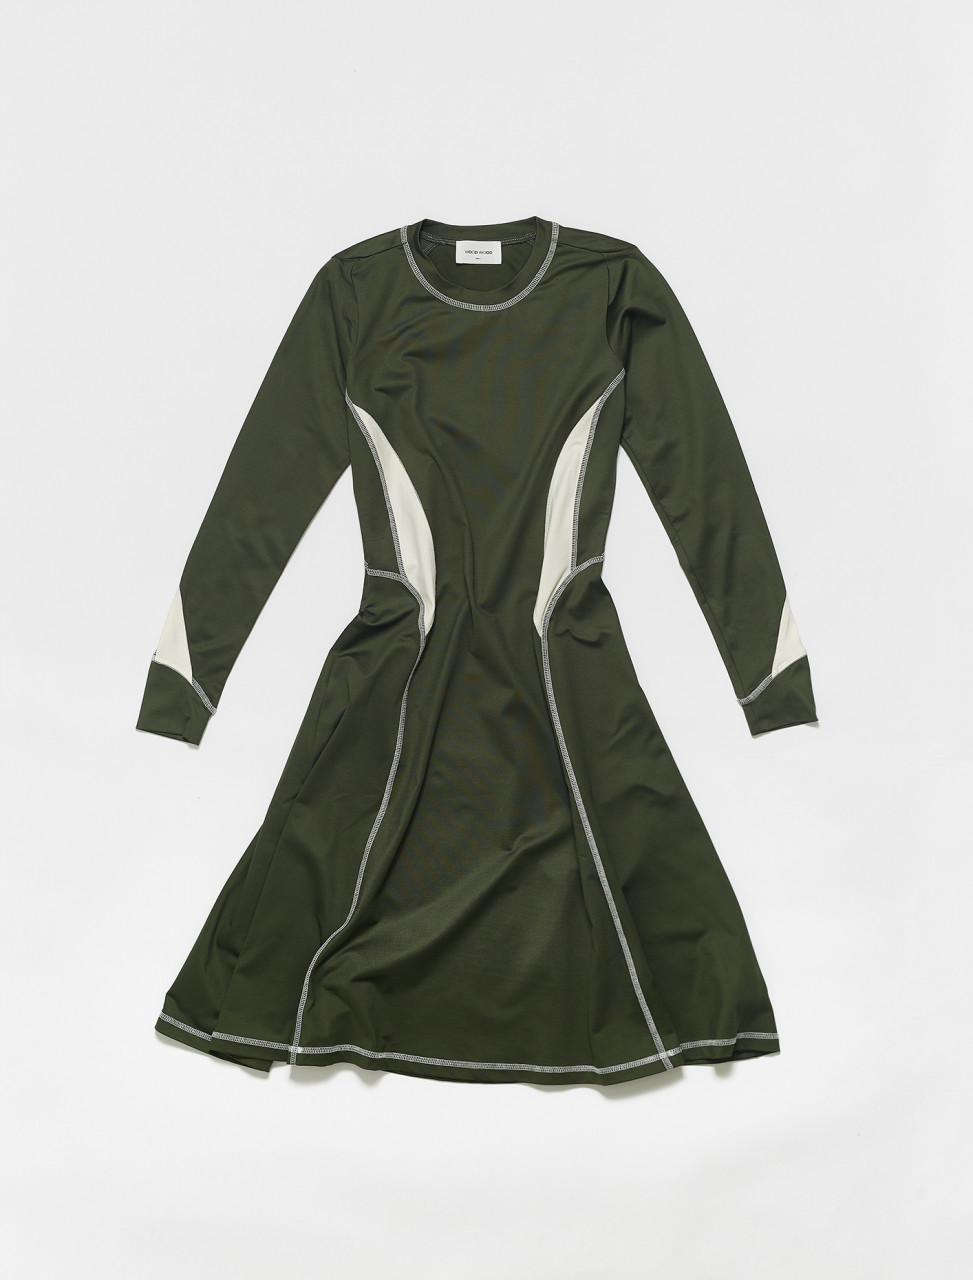 325-12011105-2478 WOOD WOOD SUE DRESS DARK GREEN